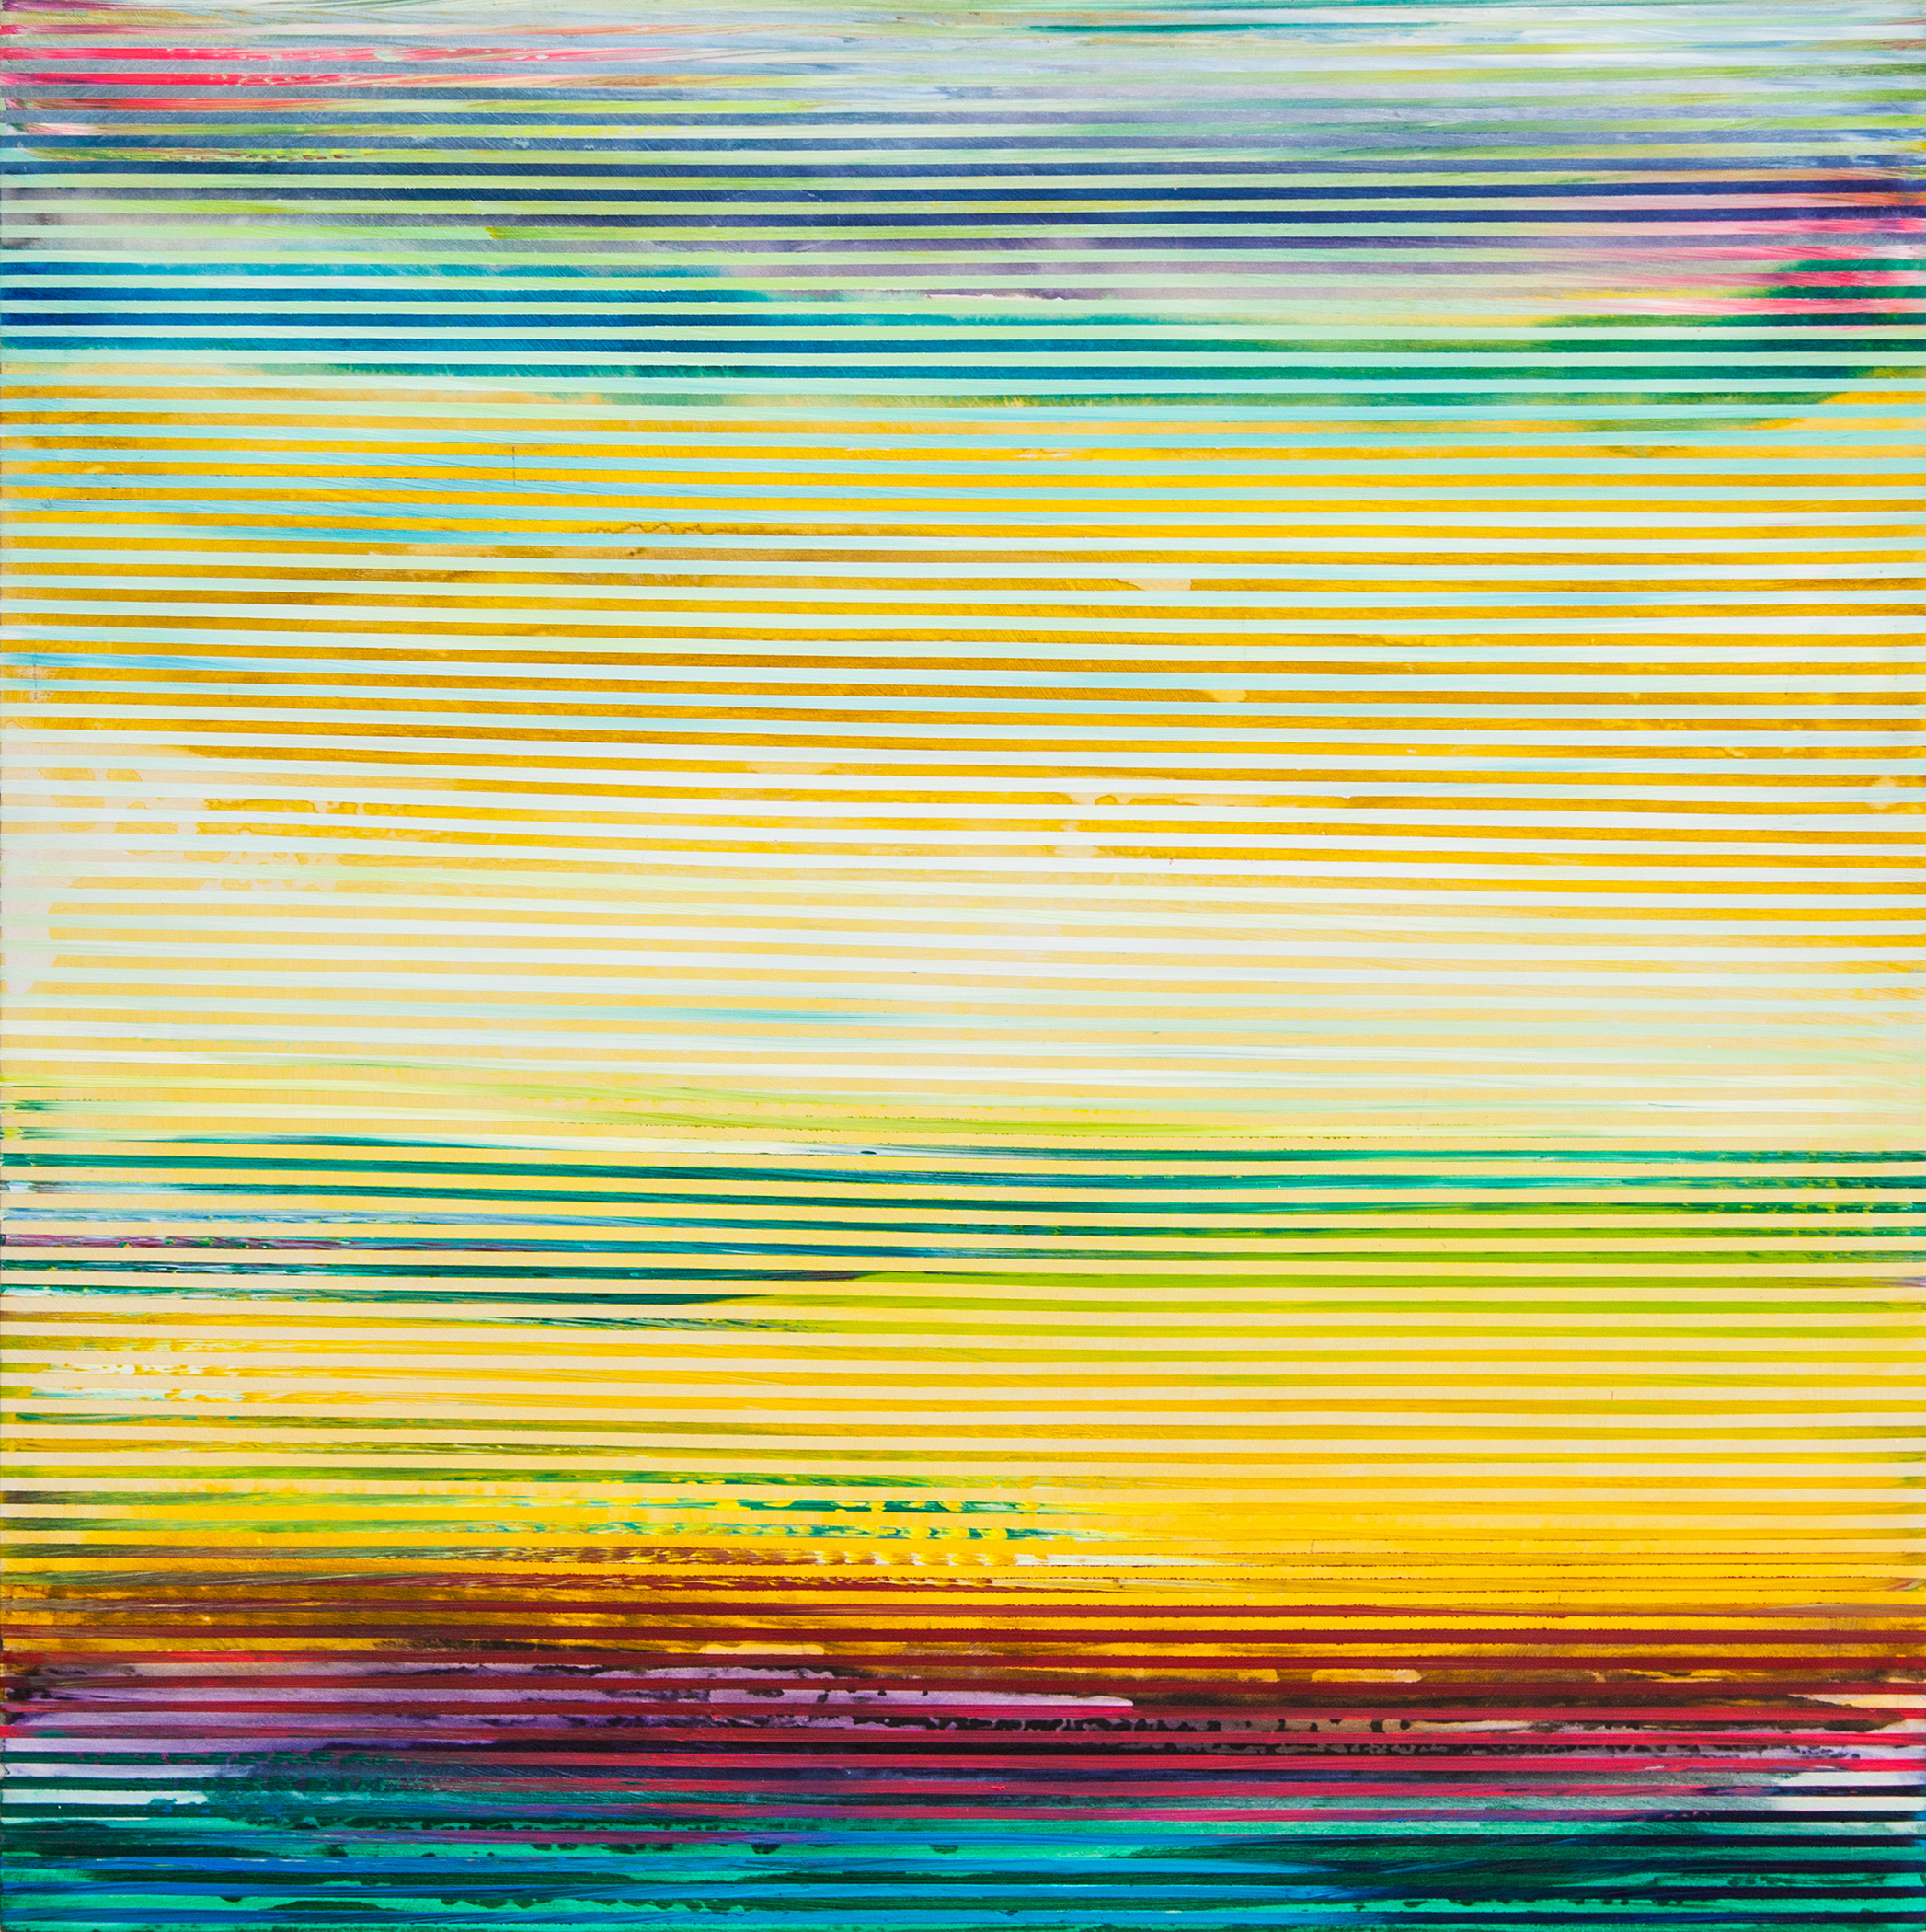 Weaving Landscape No.14_36 x 36 inches_at Beauchamp_2017